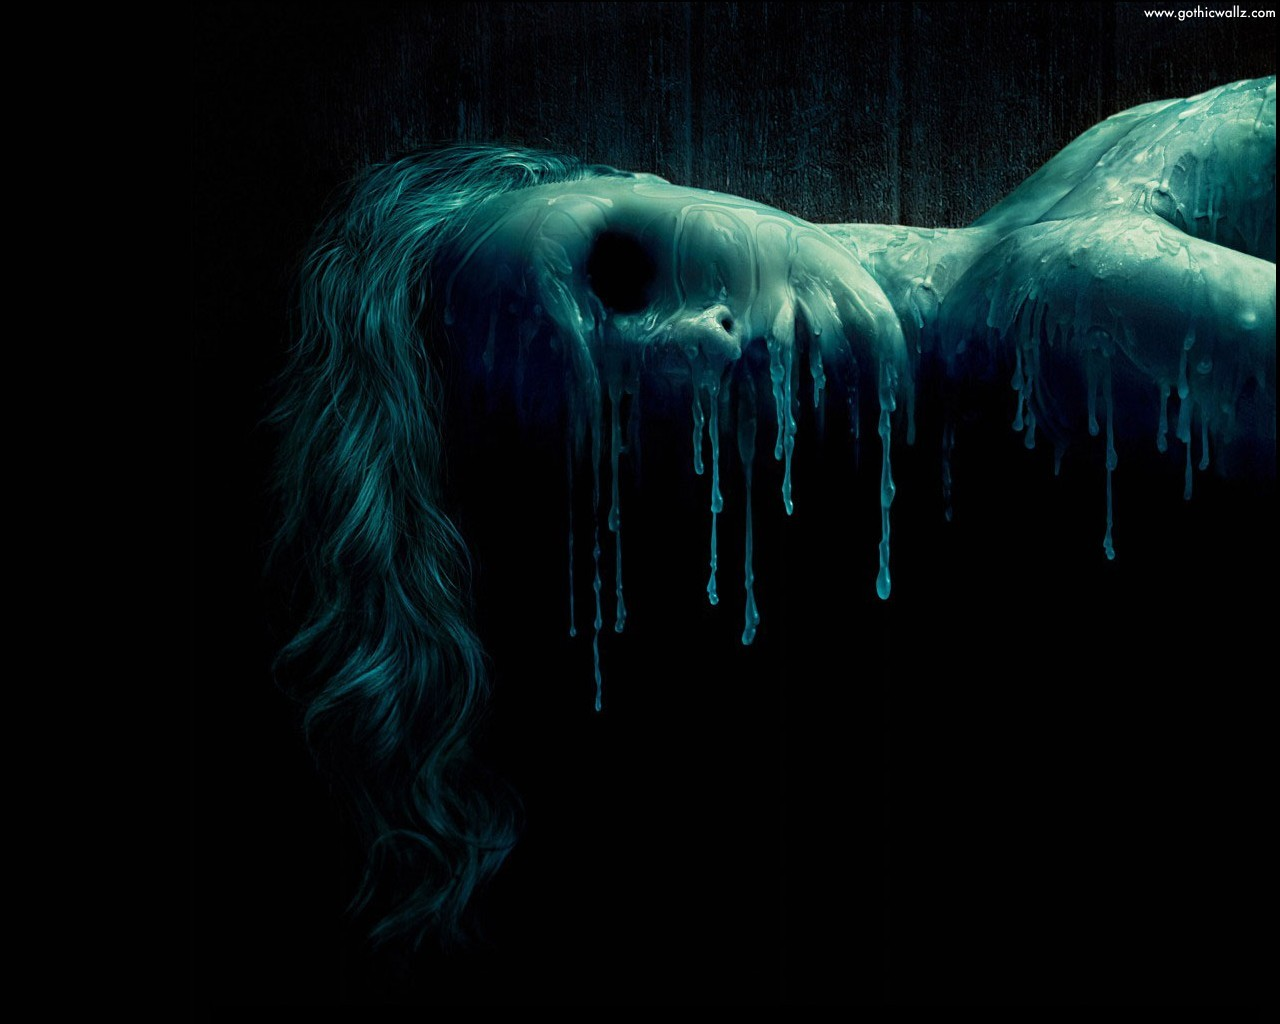 Dripping Face | Dark Gothic Wallpaper Download